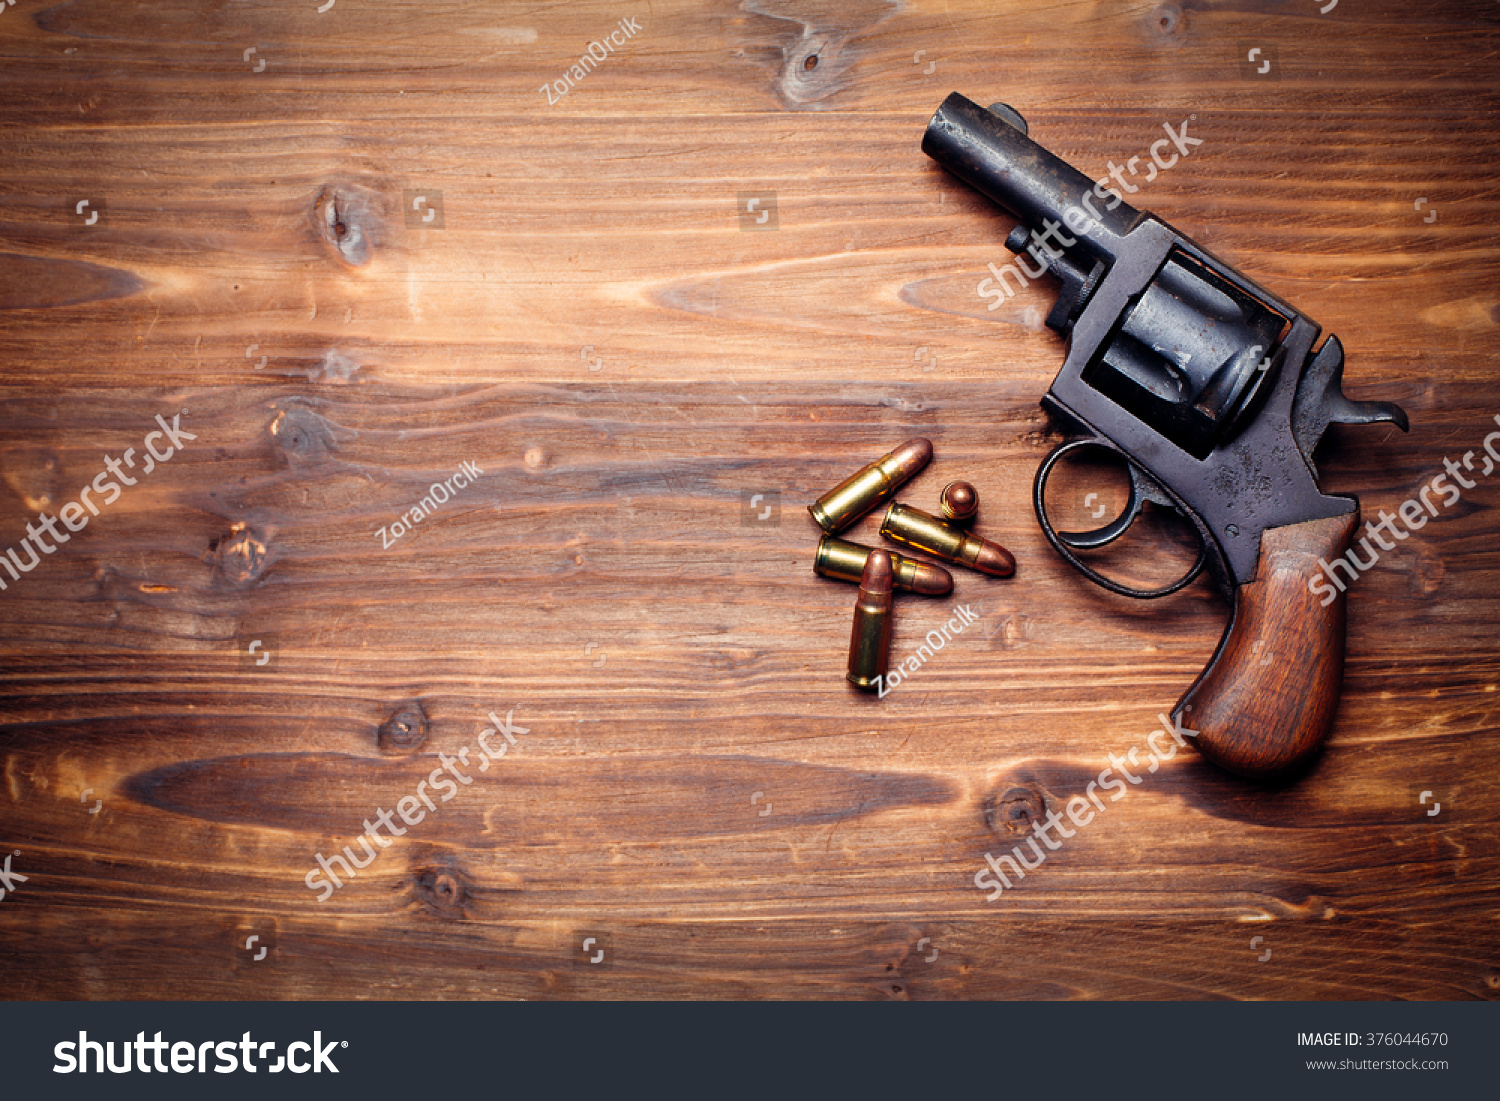 Revolver On The Wooden Table Stock Photo 376044670 ...